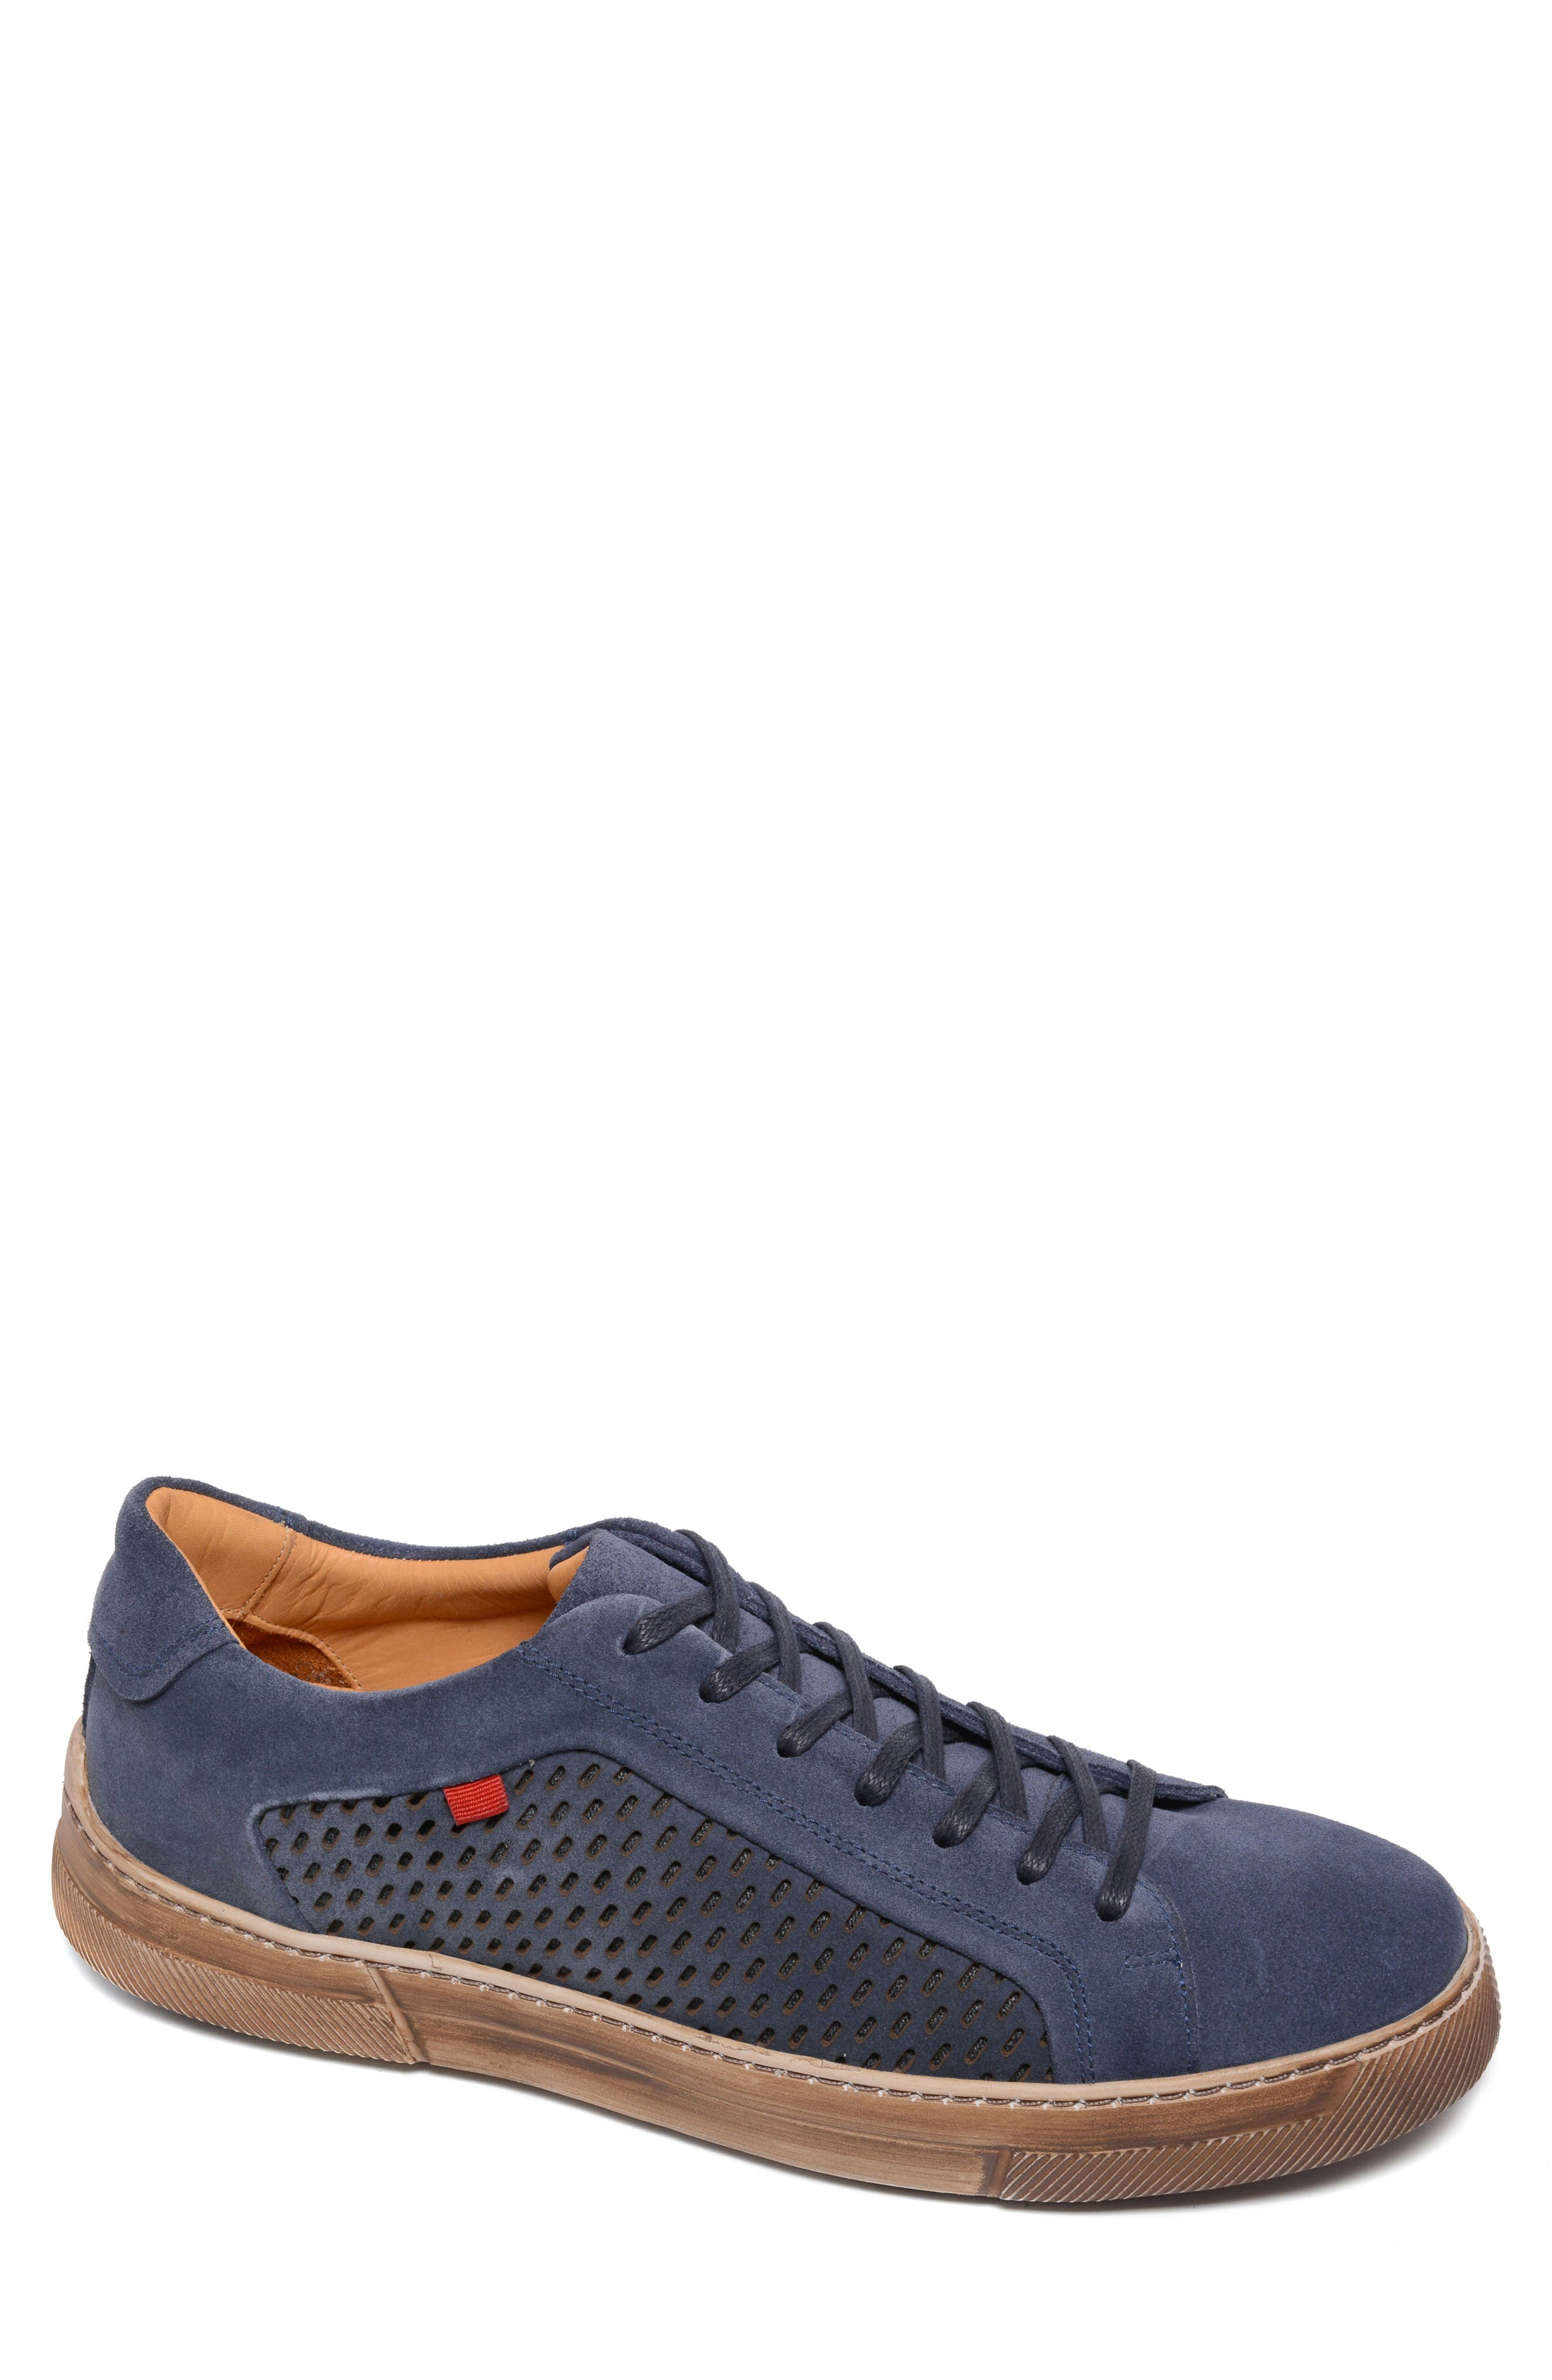 A well-worn sole adds a vintage tinge to a stylish sneaker handcrafted from creamy suede. Style Name: Marc Joseph New York Oliver Place Sneaker (Men). Style Number: 6135189. Available in stores.